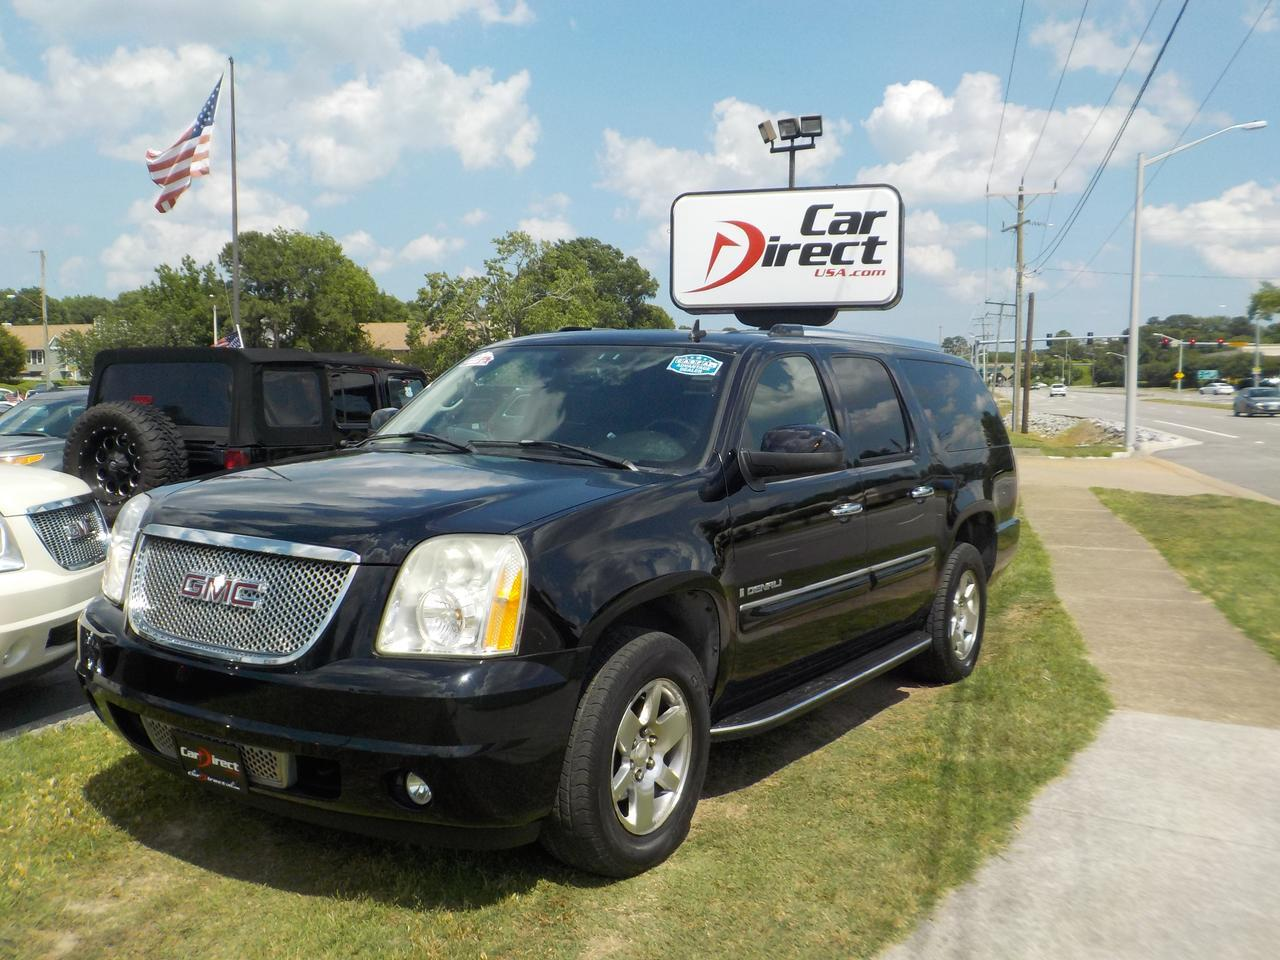 2007 GMC YUKON DENALI, WARRANTY, BOSE SOUND SYSTEM, DVD ENTERTAINMENT, BLUETOOTH, ONSTAR, SUNROOF, LOW MILES!!